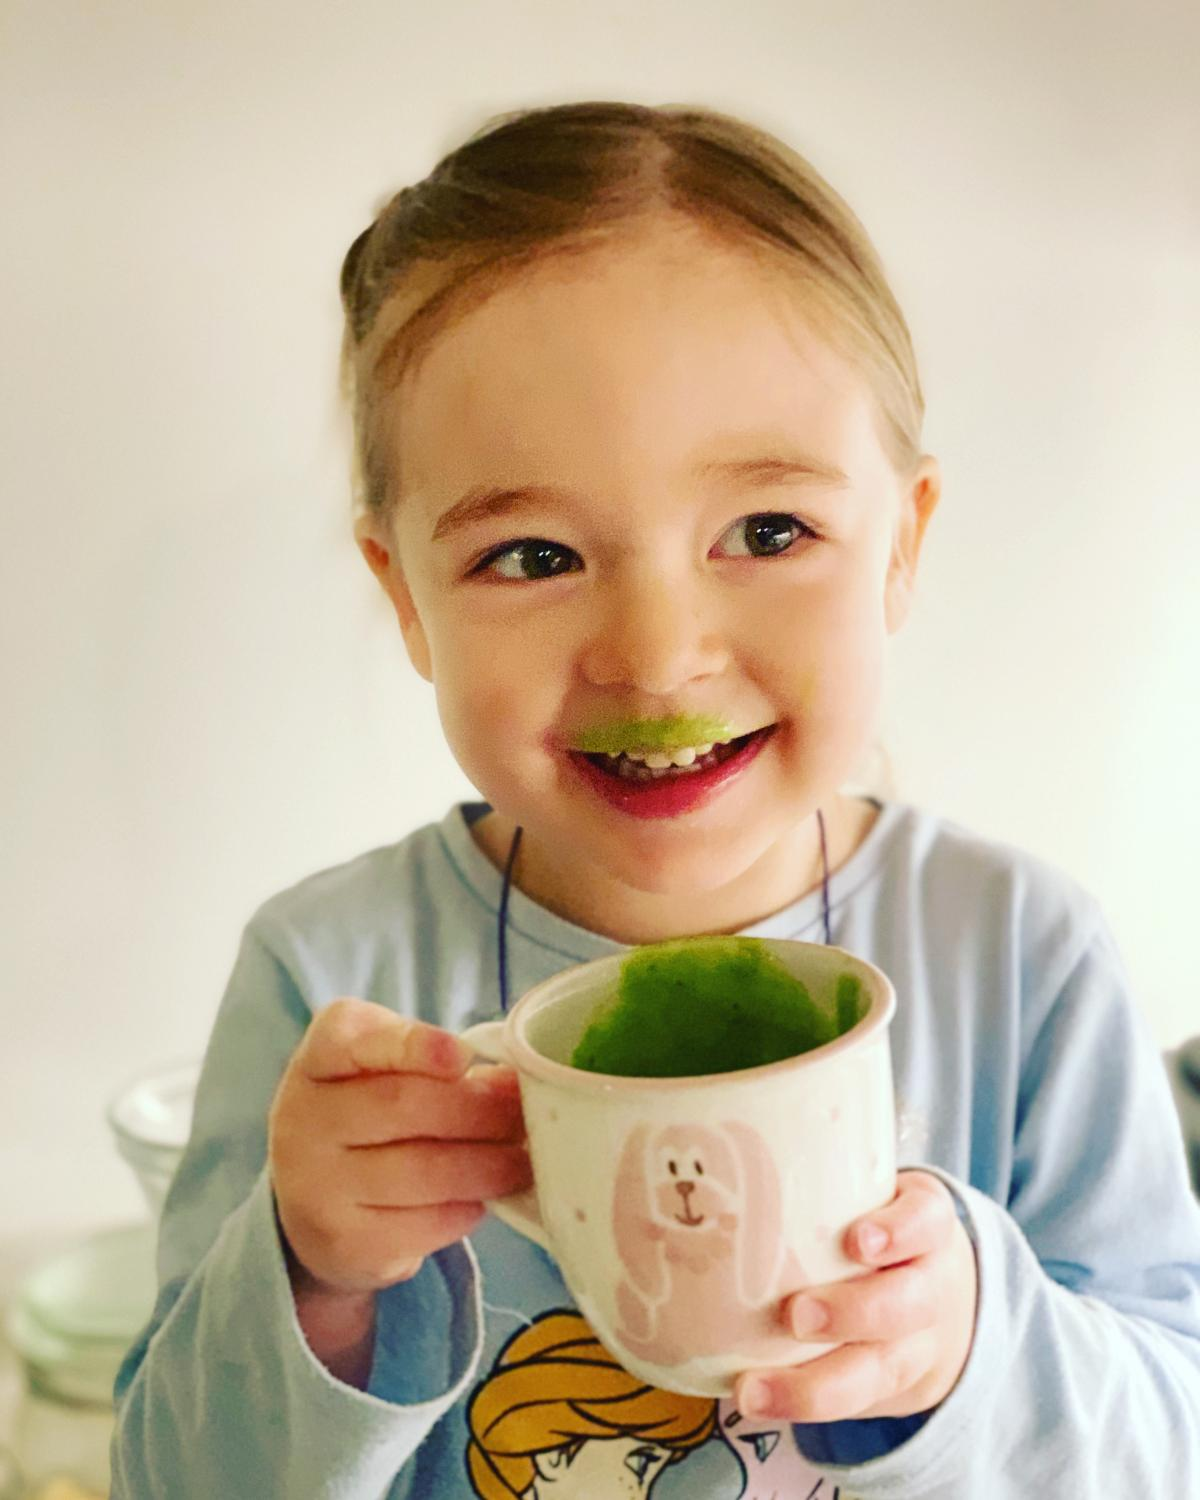 How to make your kids drink their greens?